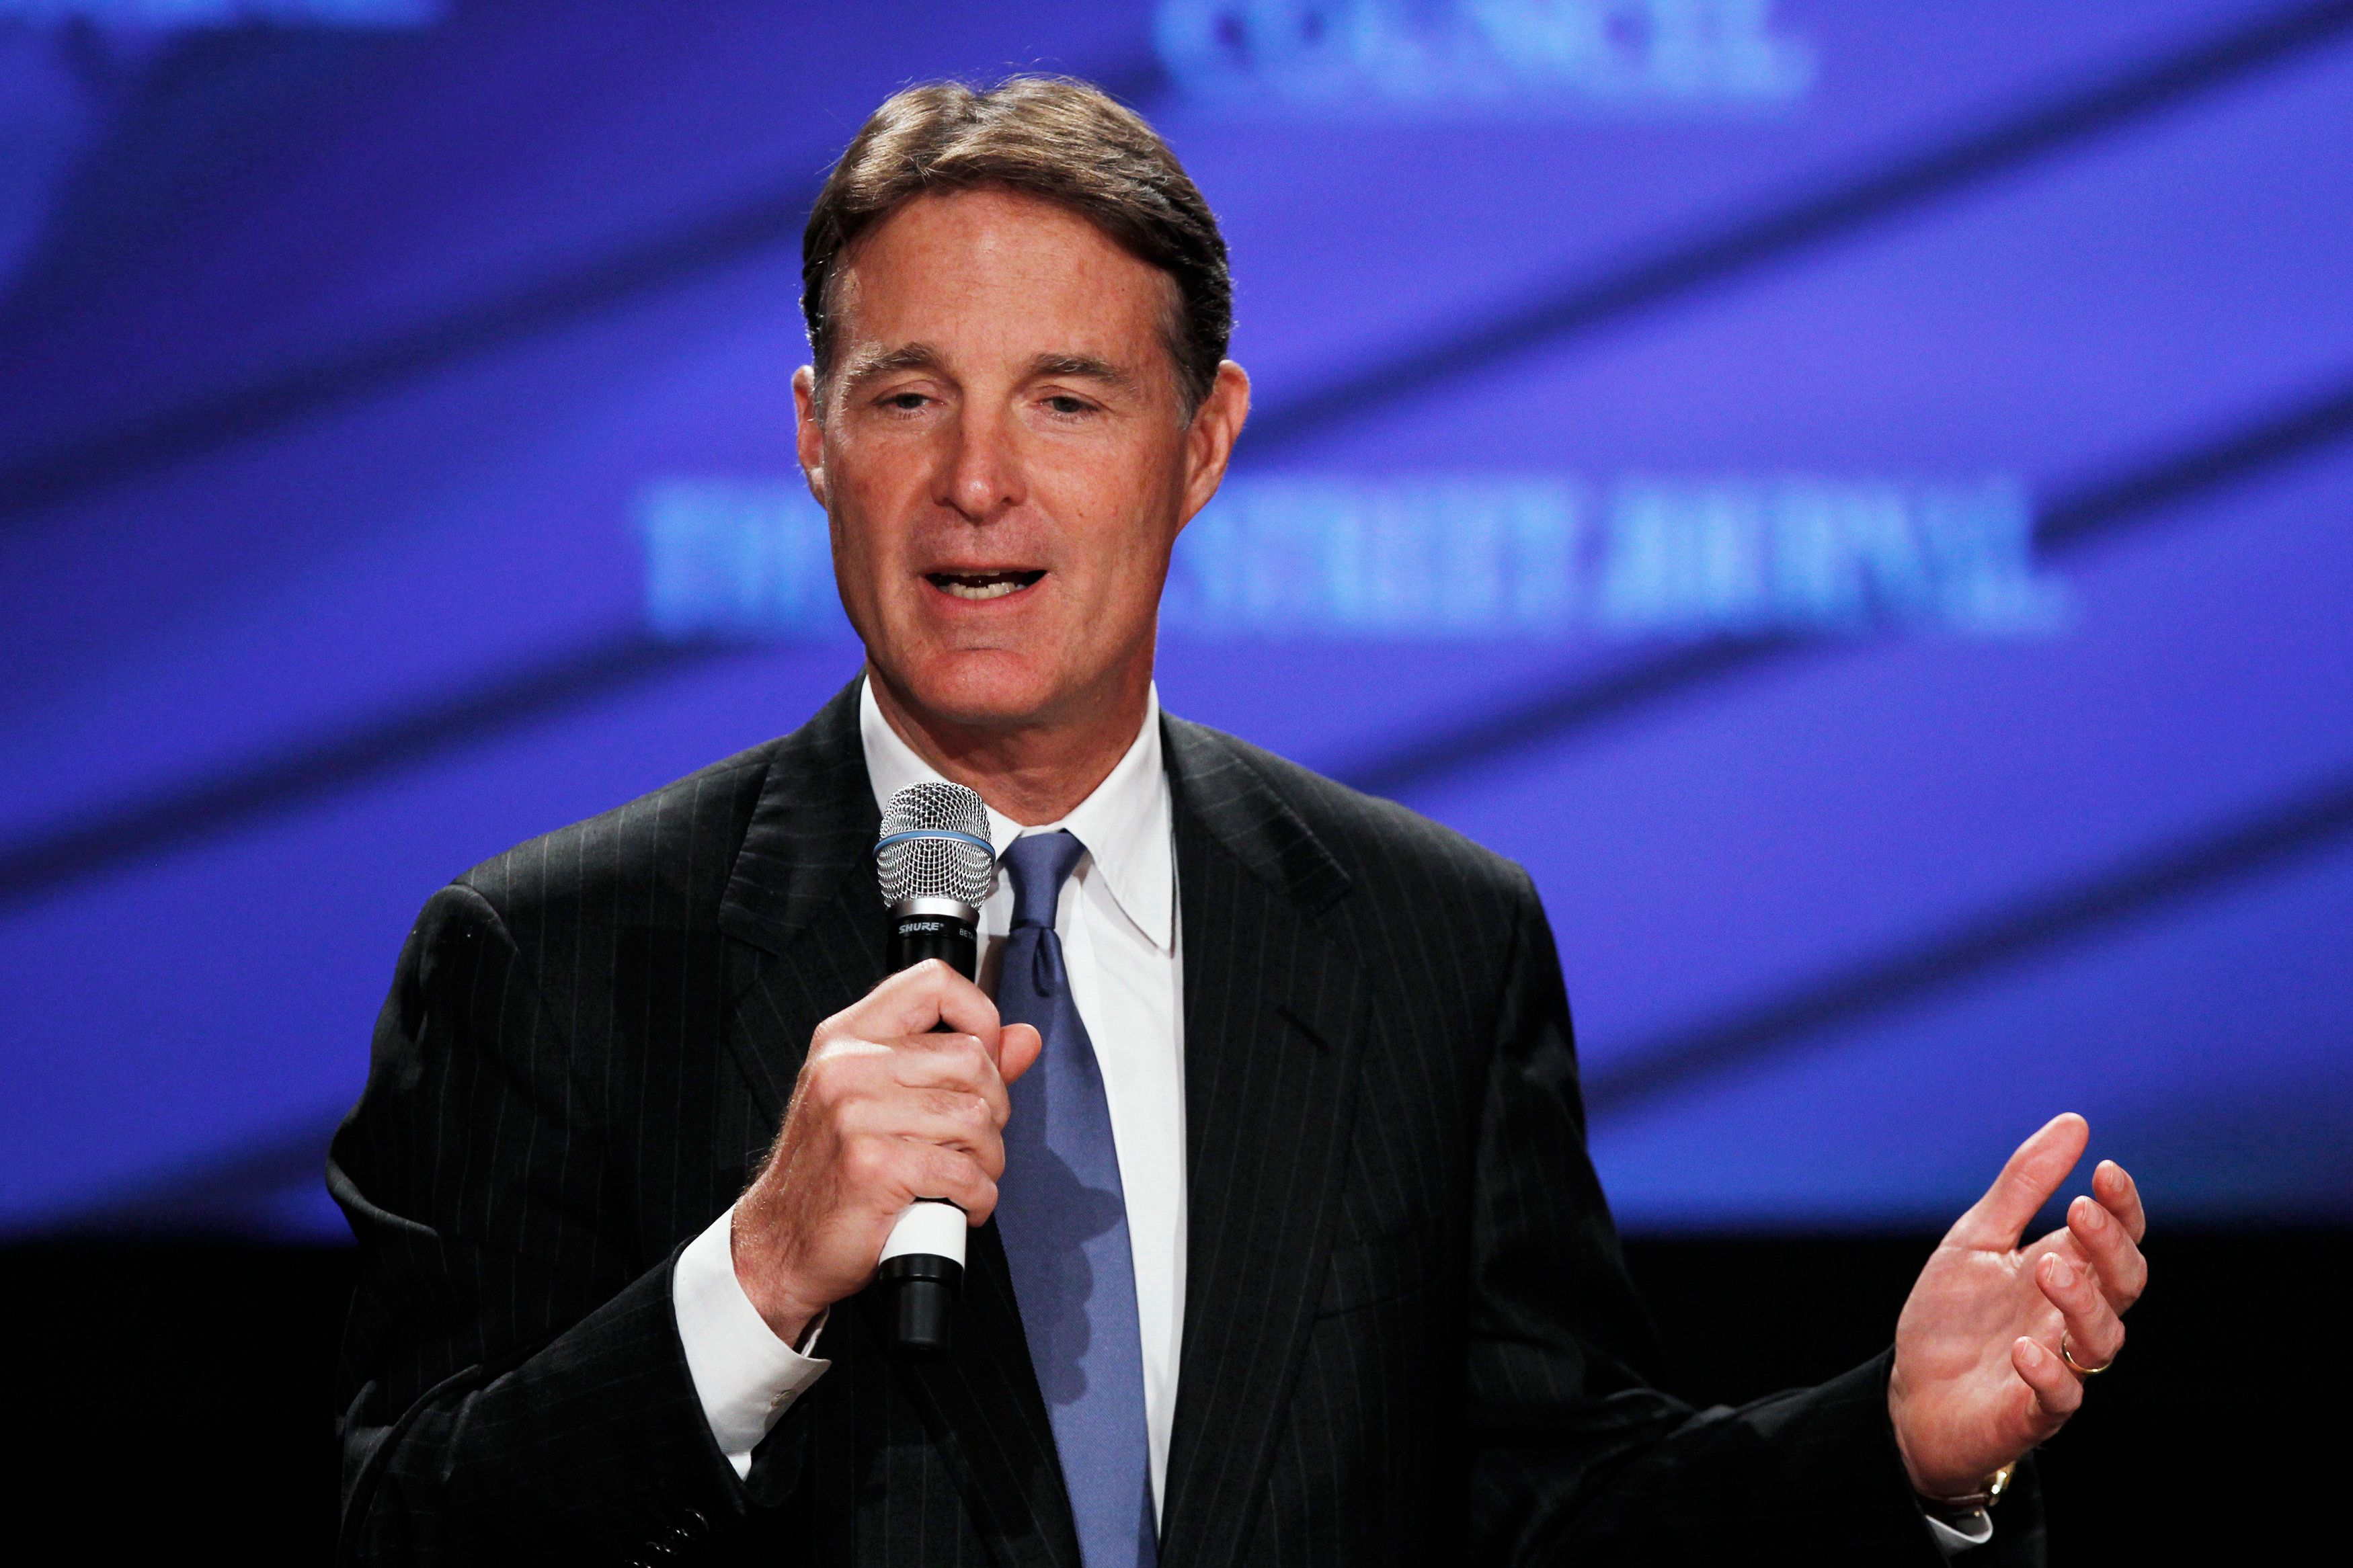 U.S. Senator Evan Bayh (D-IN) speaks at the 2010 meeting of the Wall Street Journal CEO Council in Washington November 15, 2010. Bayh discussed the three occasions of bi-partisan cooperation of the U.S. Senate -- agreeing on the rules of impeachment trial, after 9-11 attacks, and 2008 Financial crisis. REUTERS/Hyungwon Kang   (UNITED STATES - Tags: BUSINESS POLITICS)